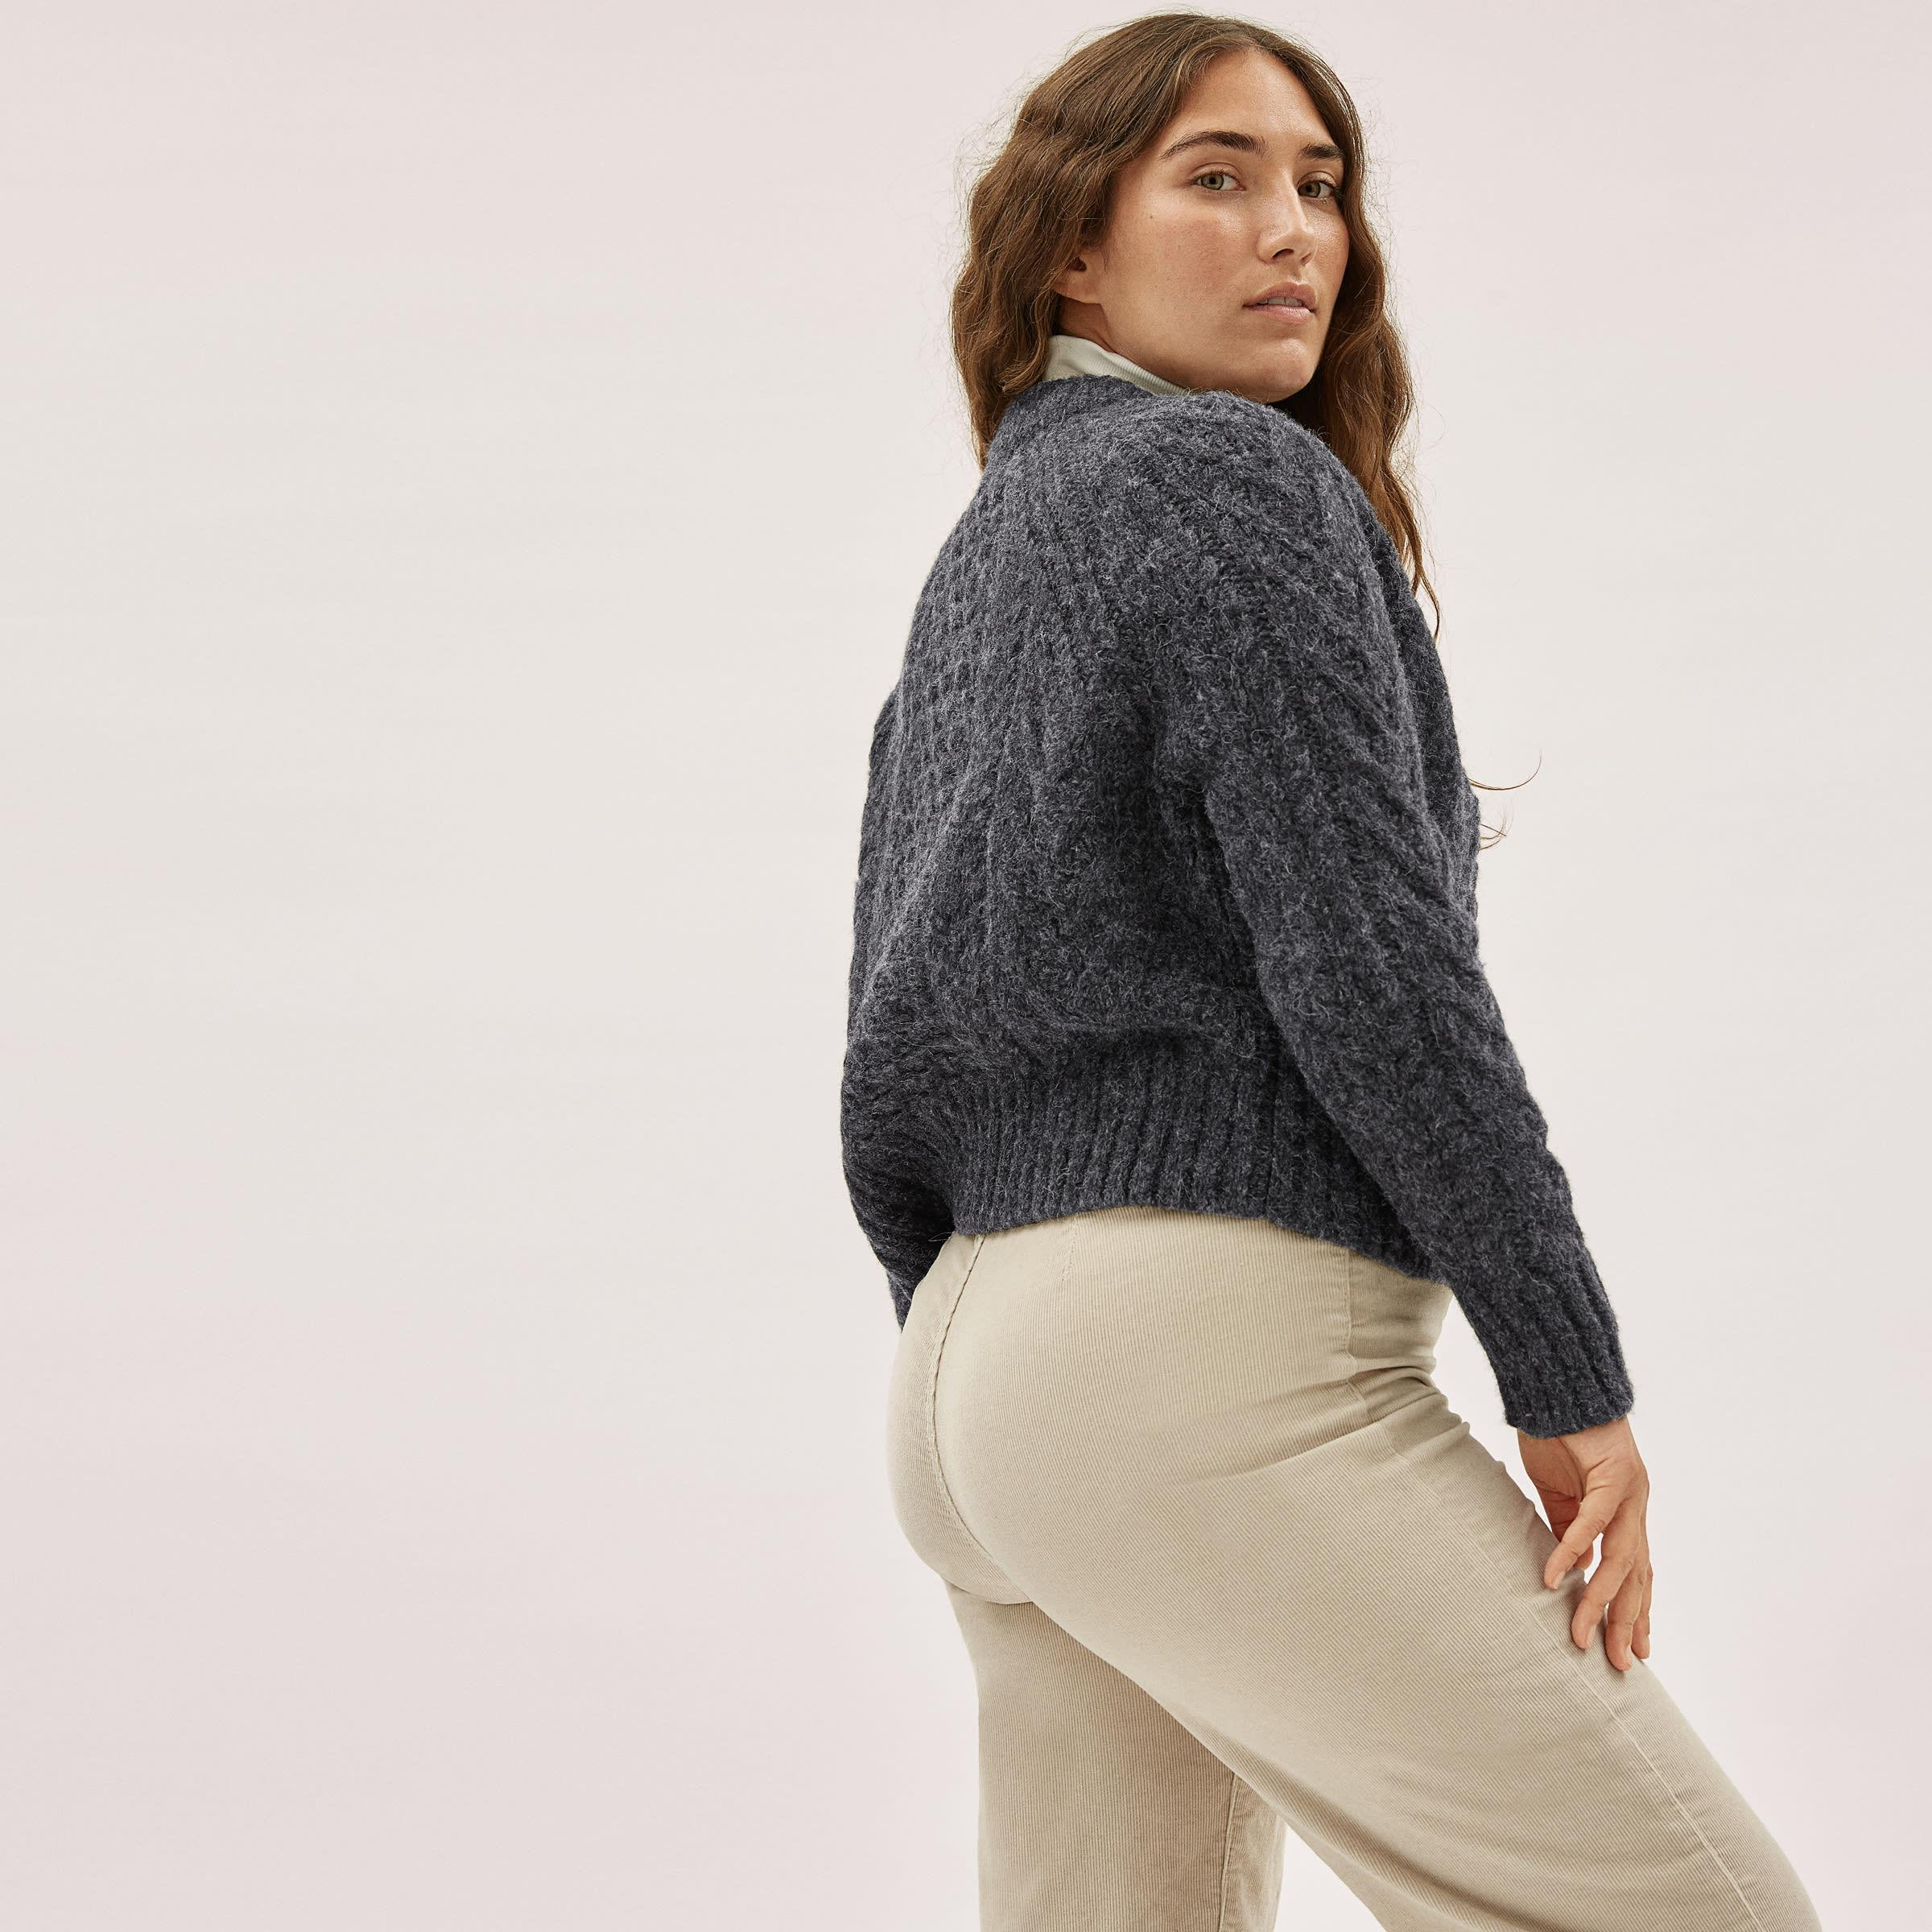 The Cloud Cable Cardigan 2